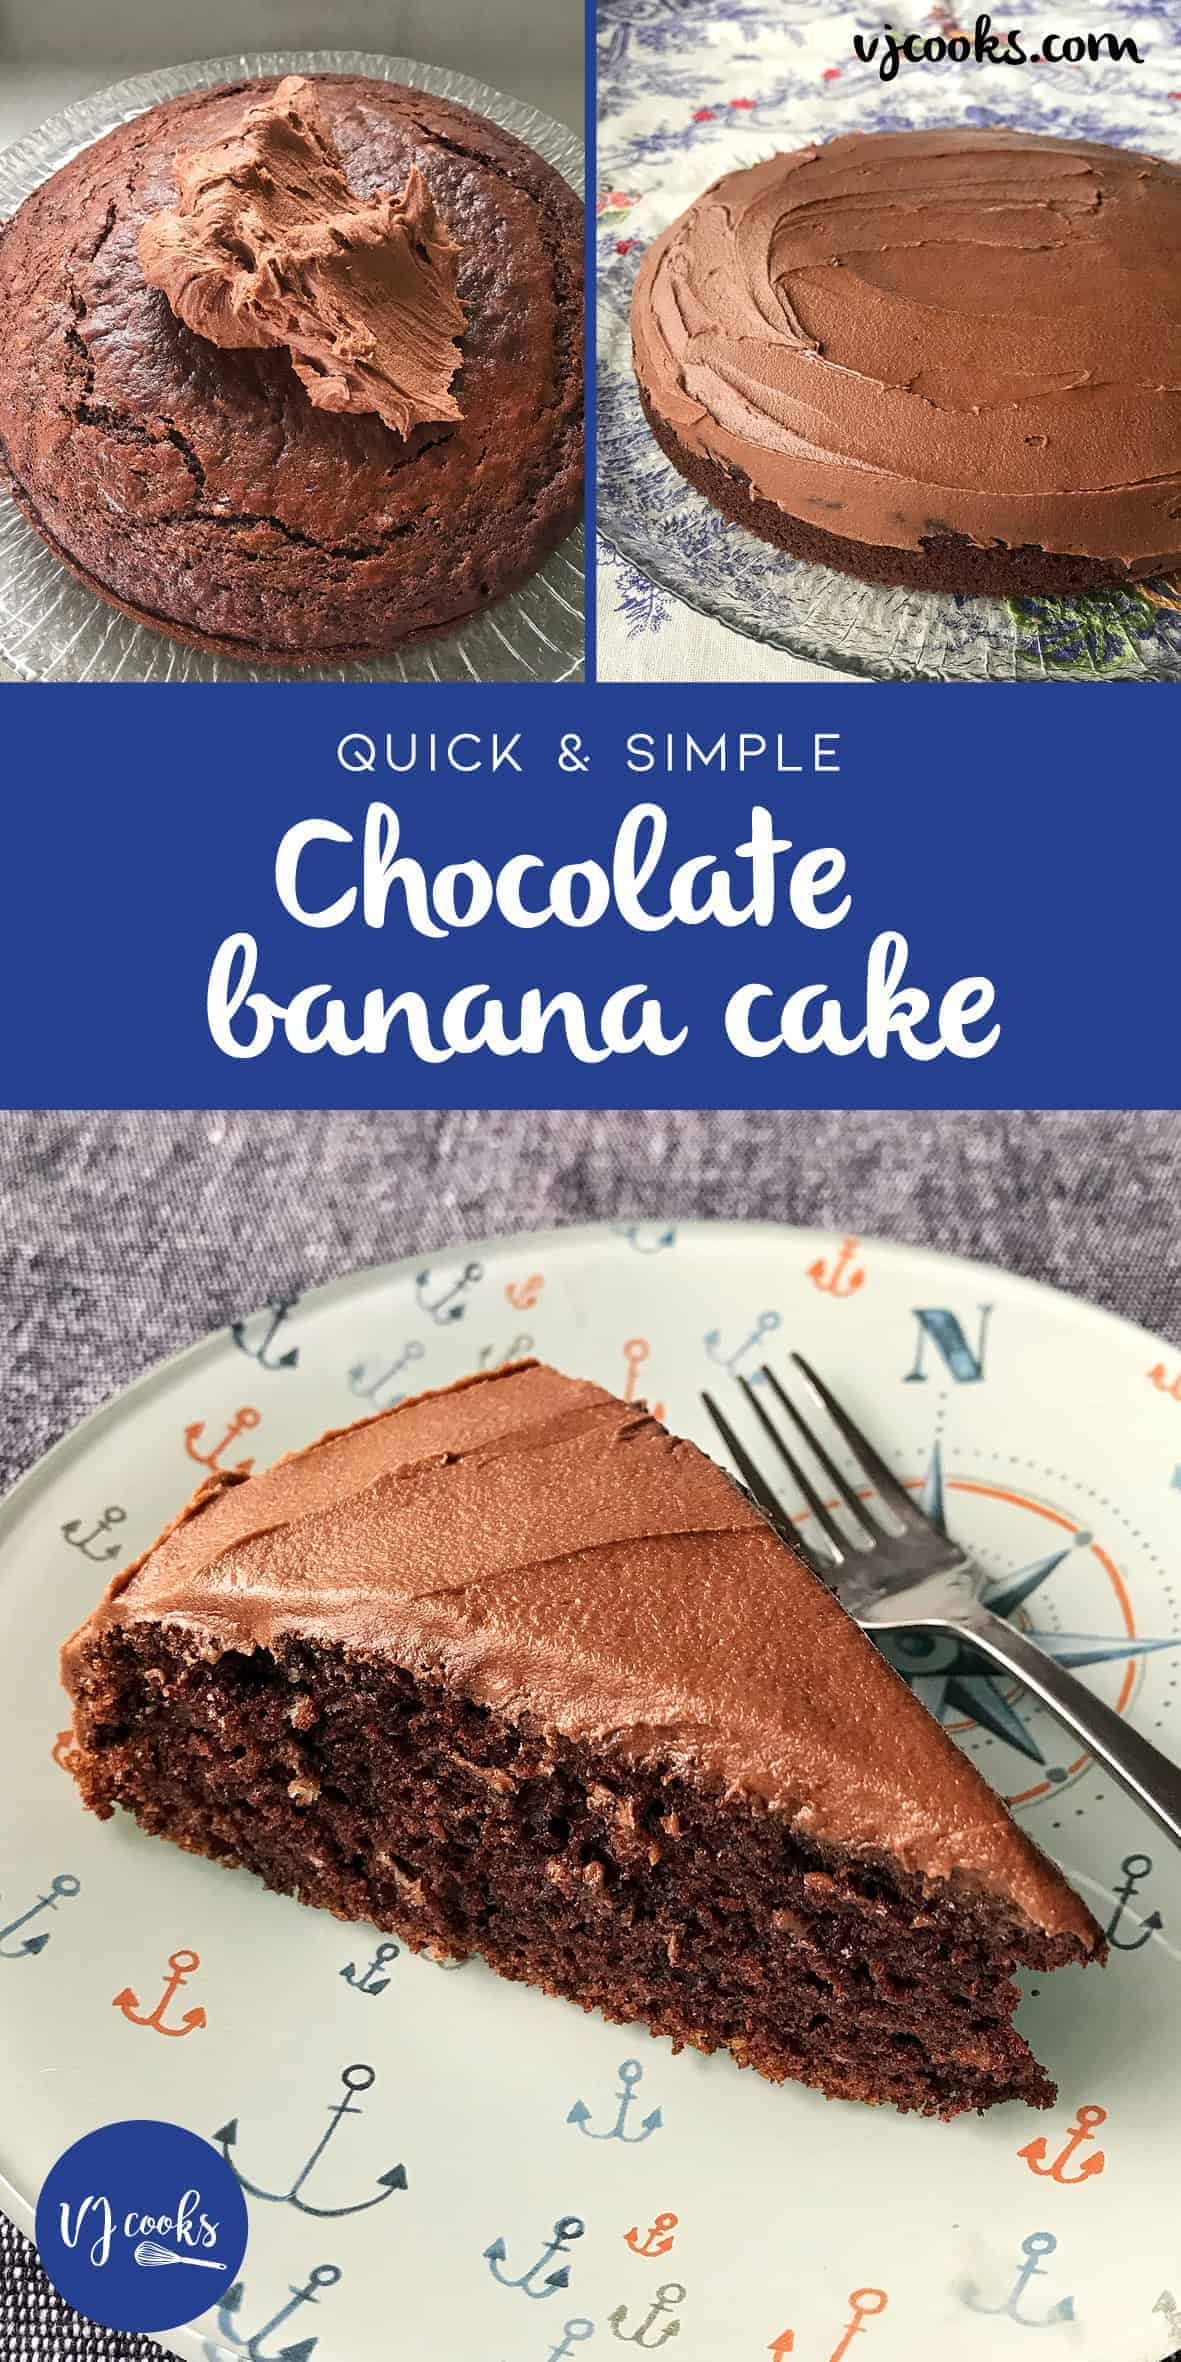 Quick and easy chocolate banana cake recipe by VJ cooks. #chocolatebananacake #vjcooks